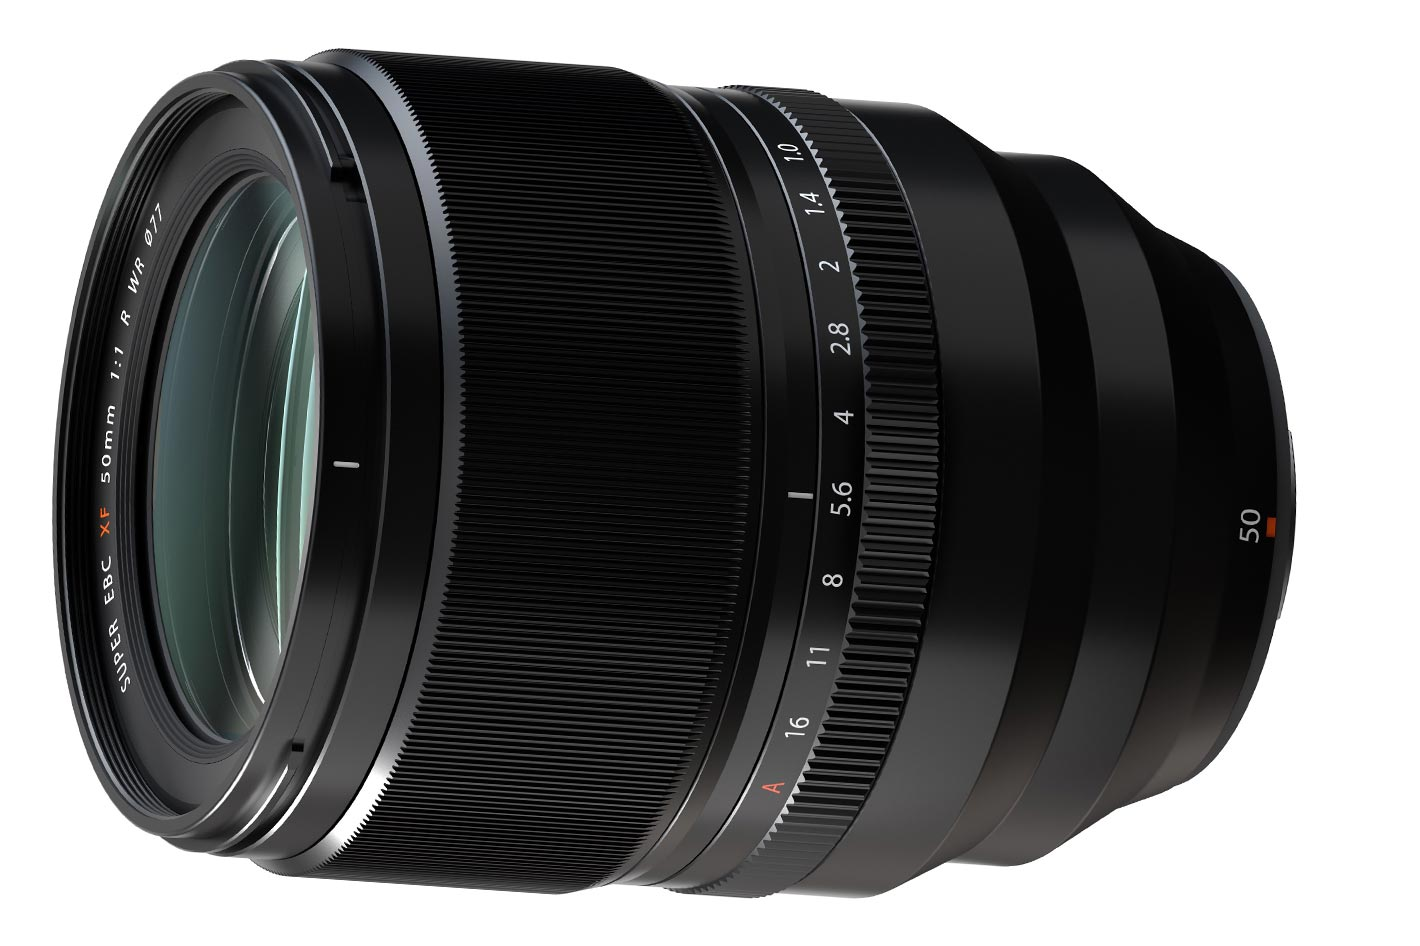 FUJINON XF50mm F1.0 R WR: the world's first AF-capable F1.0